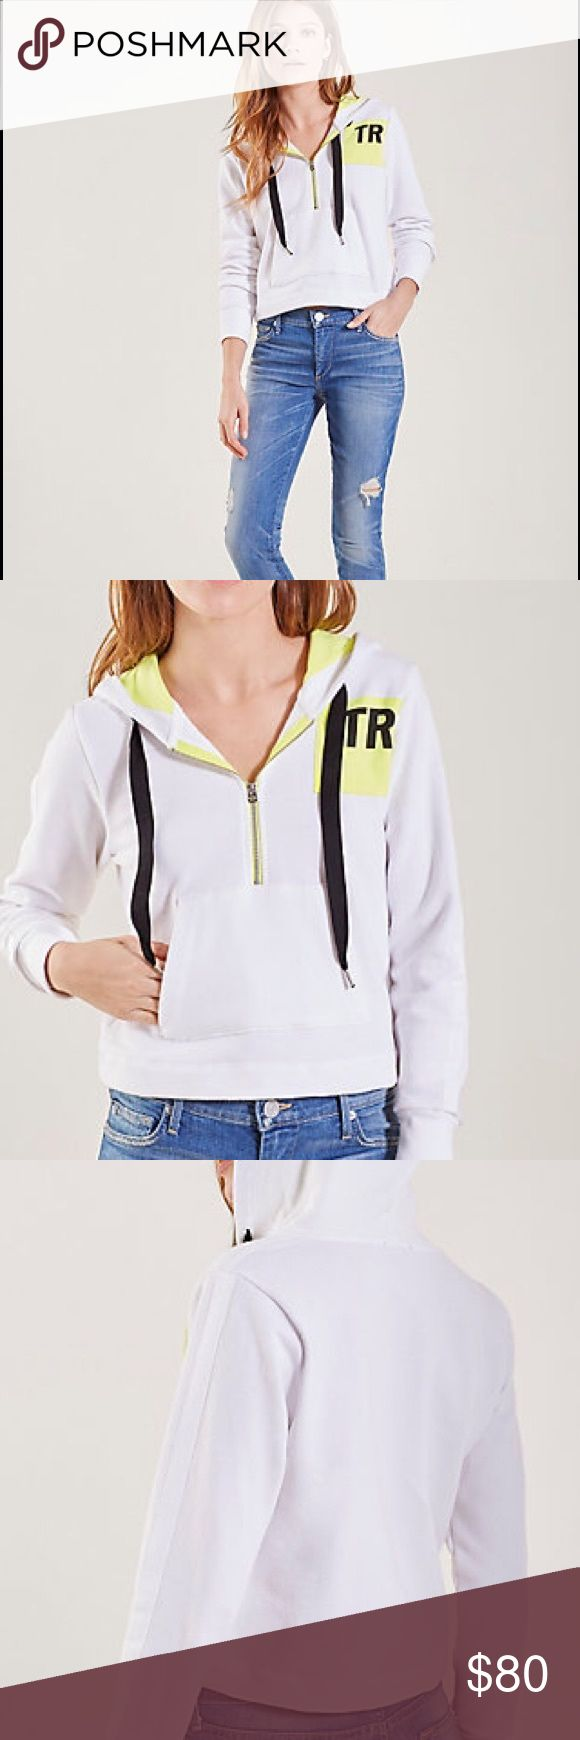 True religion neon hit zip front up hoodie green DESCRIPTION Elevate your activewear with this luxe zip front hoodie with a pop of neon detailing. (Also have matching sweatpants if desired)    Women's hoodie Relaxed fit Front pouch pocket 100% cotton Made in the USA with imported fabrics and materials. True Religion Tops Sweatshirts & Hoodies